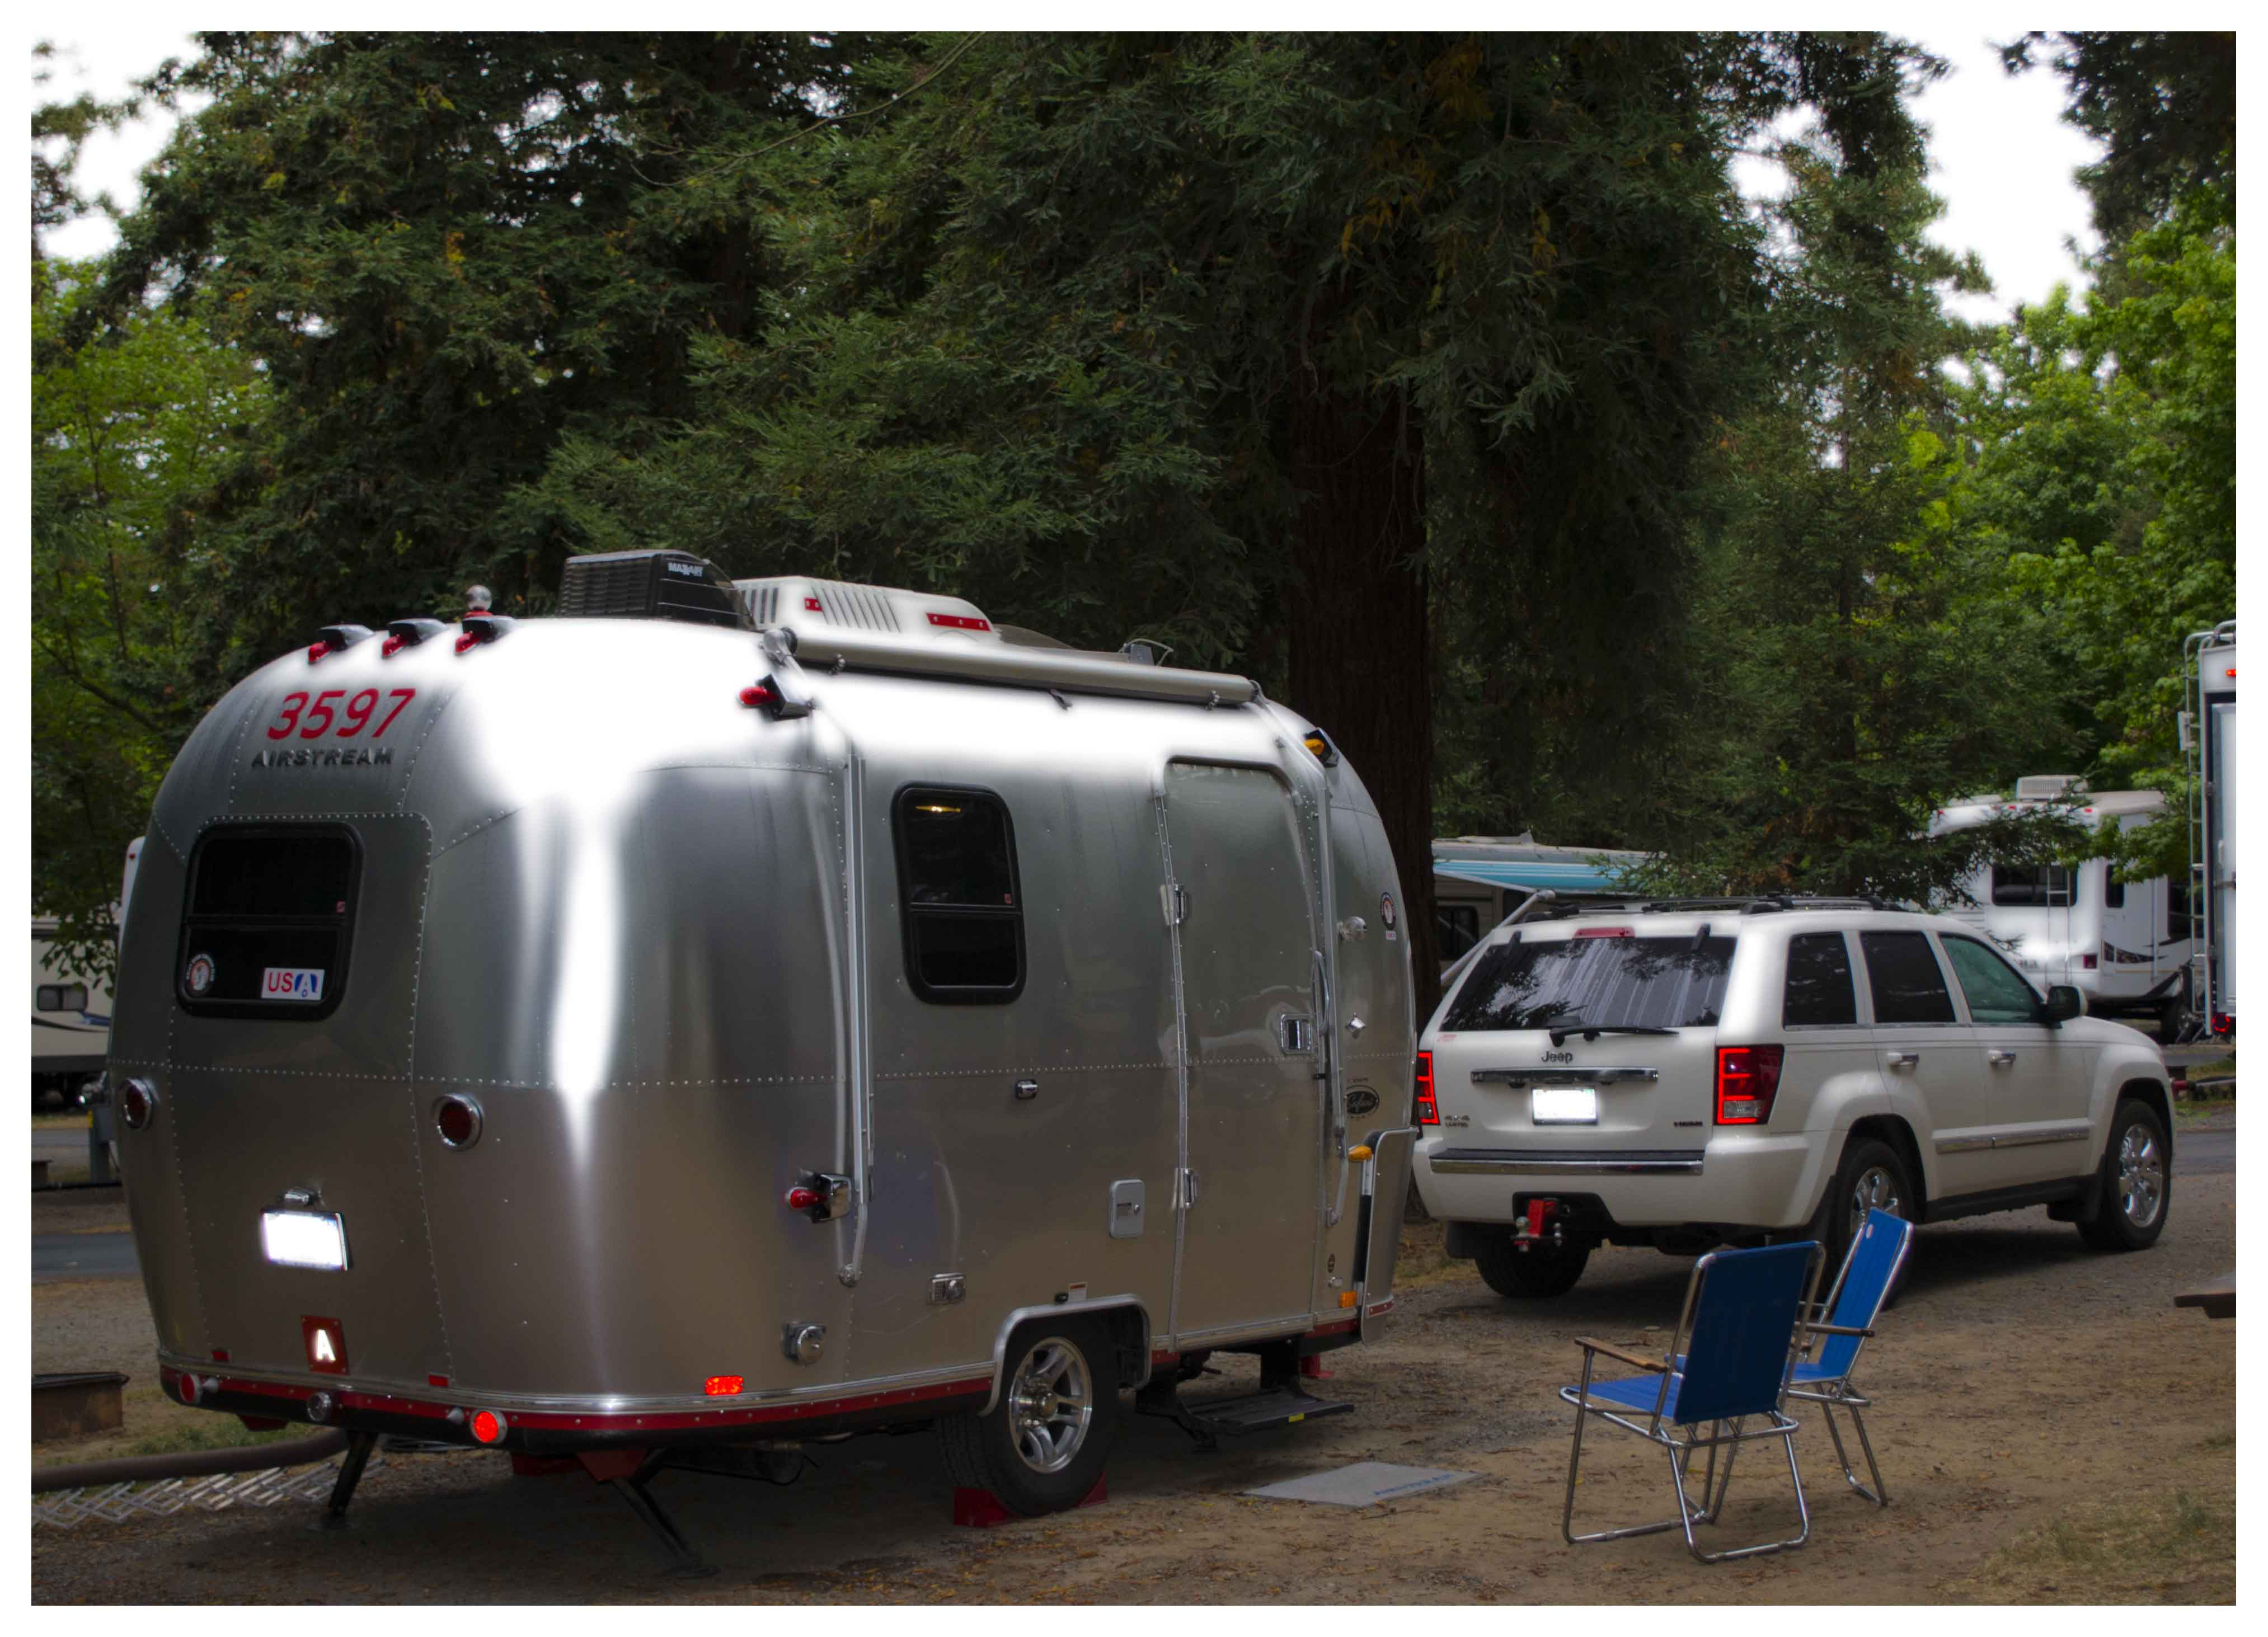 pop up motorcycle trailer with This Past Summers Most Interesting Little Rvs on Watch Potty Mouths Awesome Tour Trailer furthermore Watch additionally 299278337711743612 in addition Kill Bill Volume 3 The Whole Bloody Affair together with Truckc erhq.